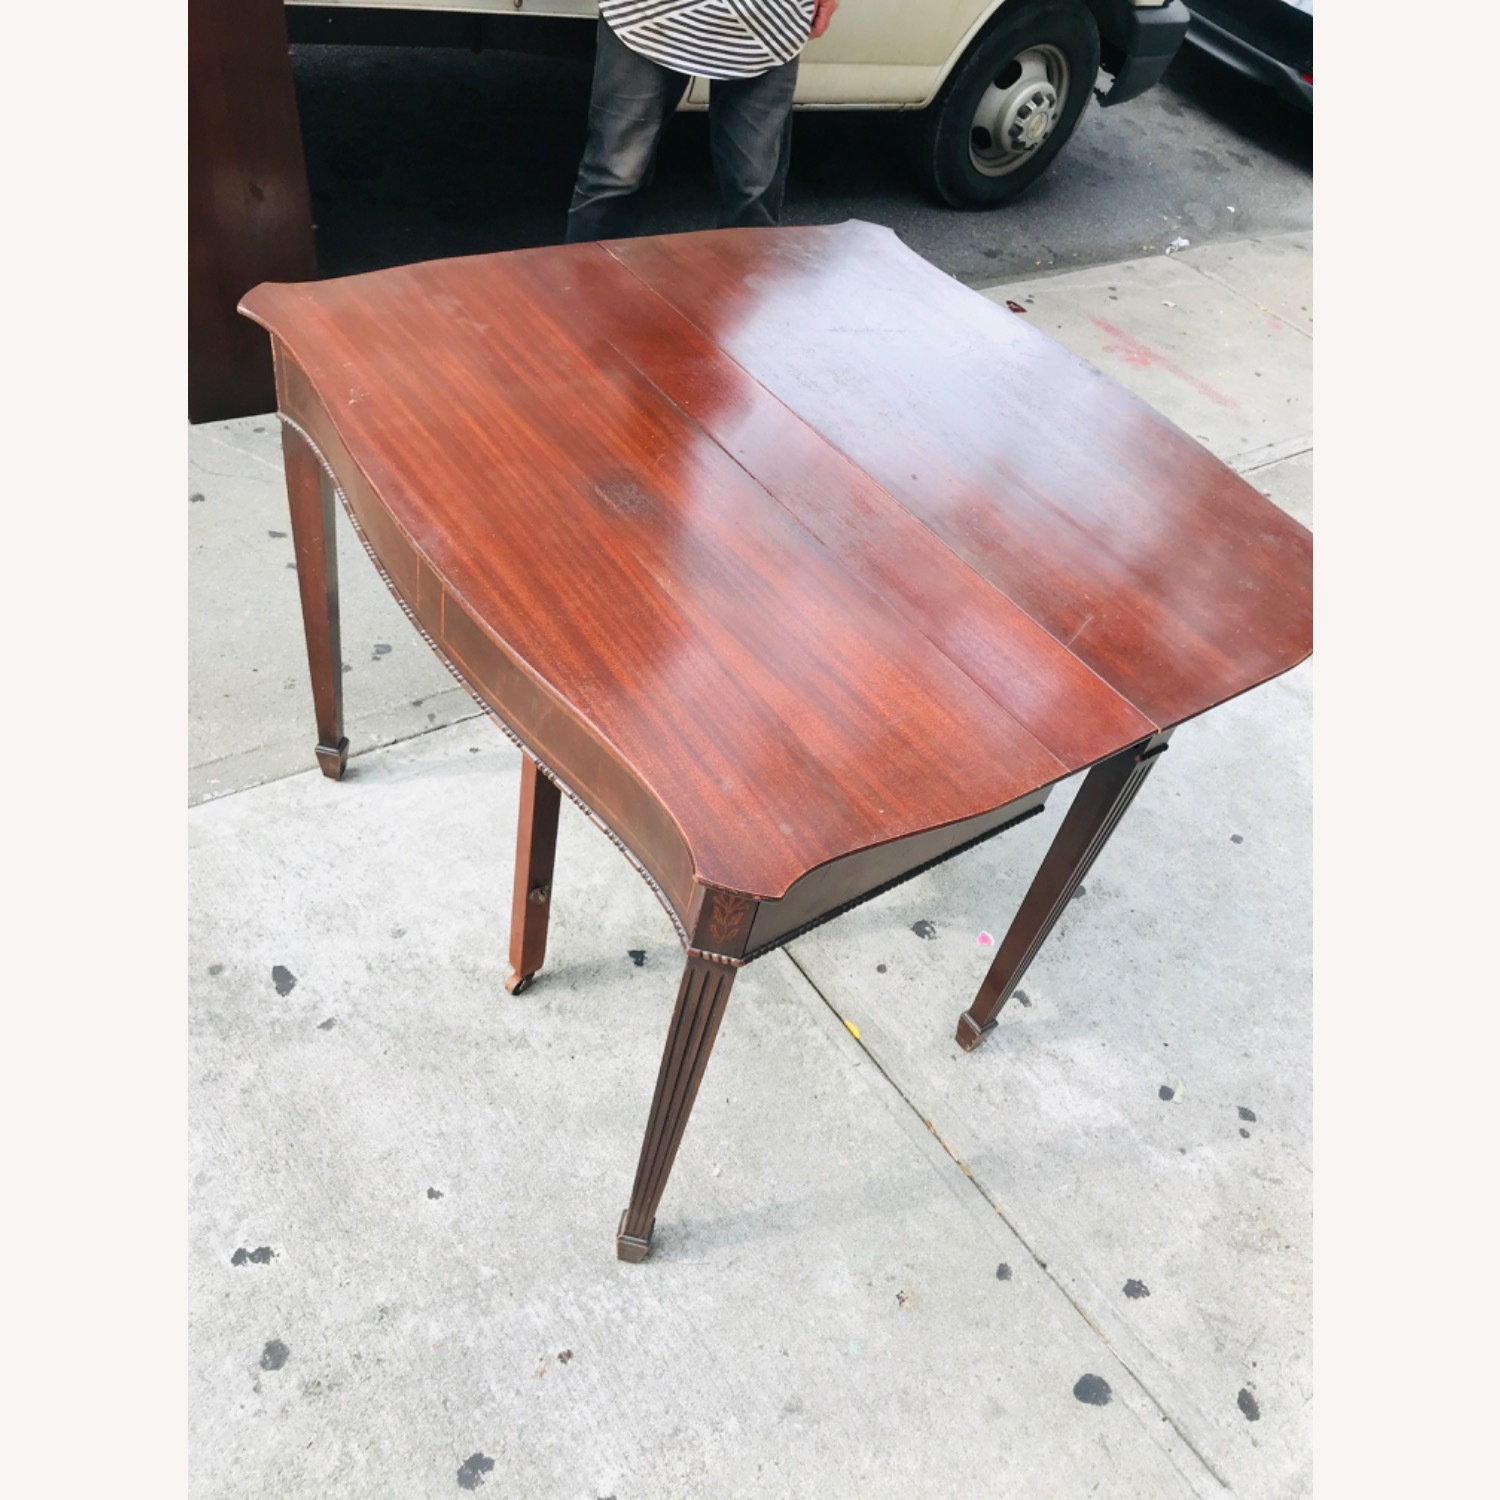 Antique 1920s Mahogany Table w/3 Leaves  - image-27